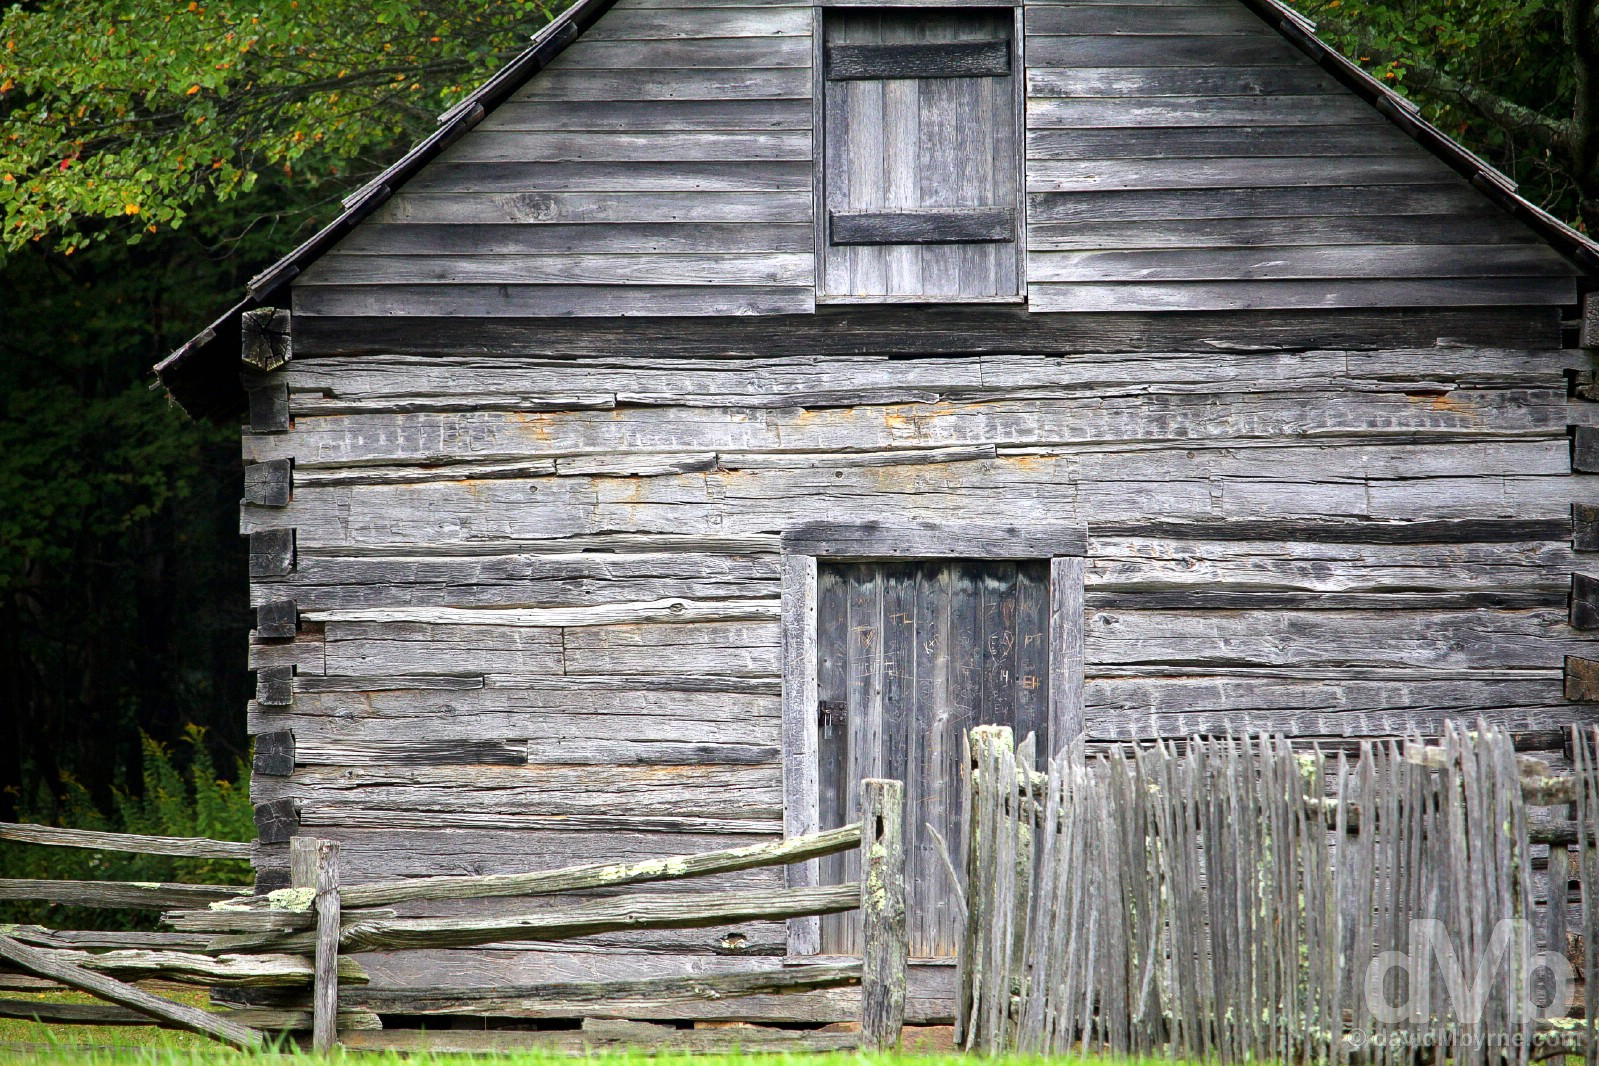 The Puckett Cabin of the All-American Blue Ridge Parkway, Virginia, USA. September 25, 2016.